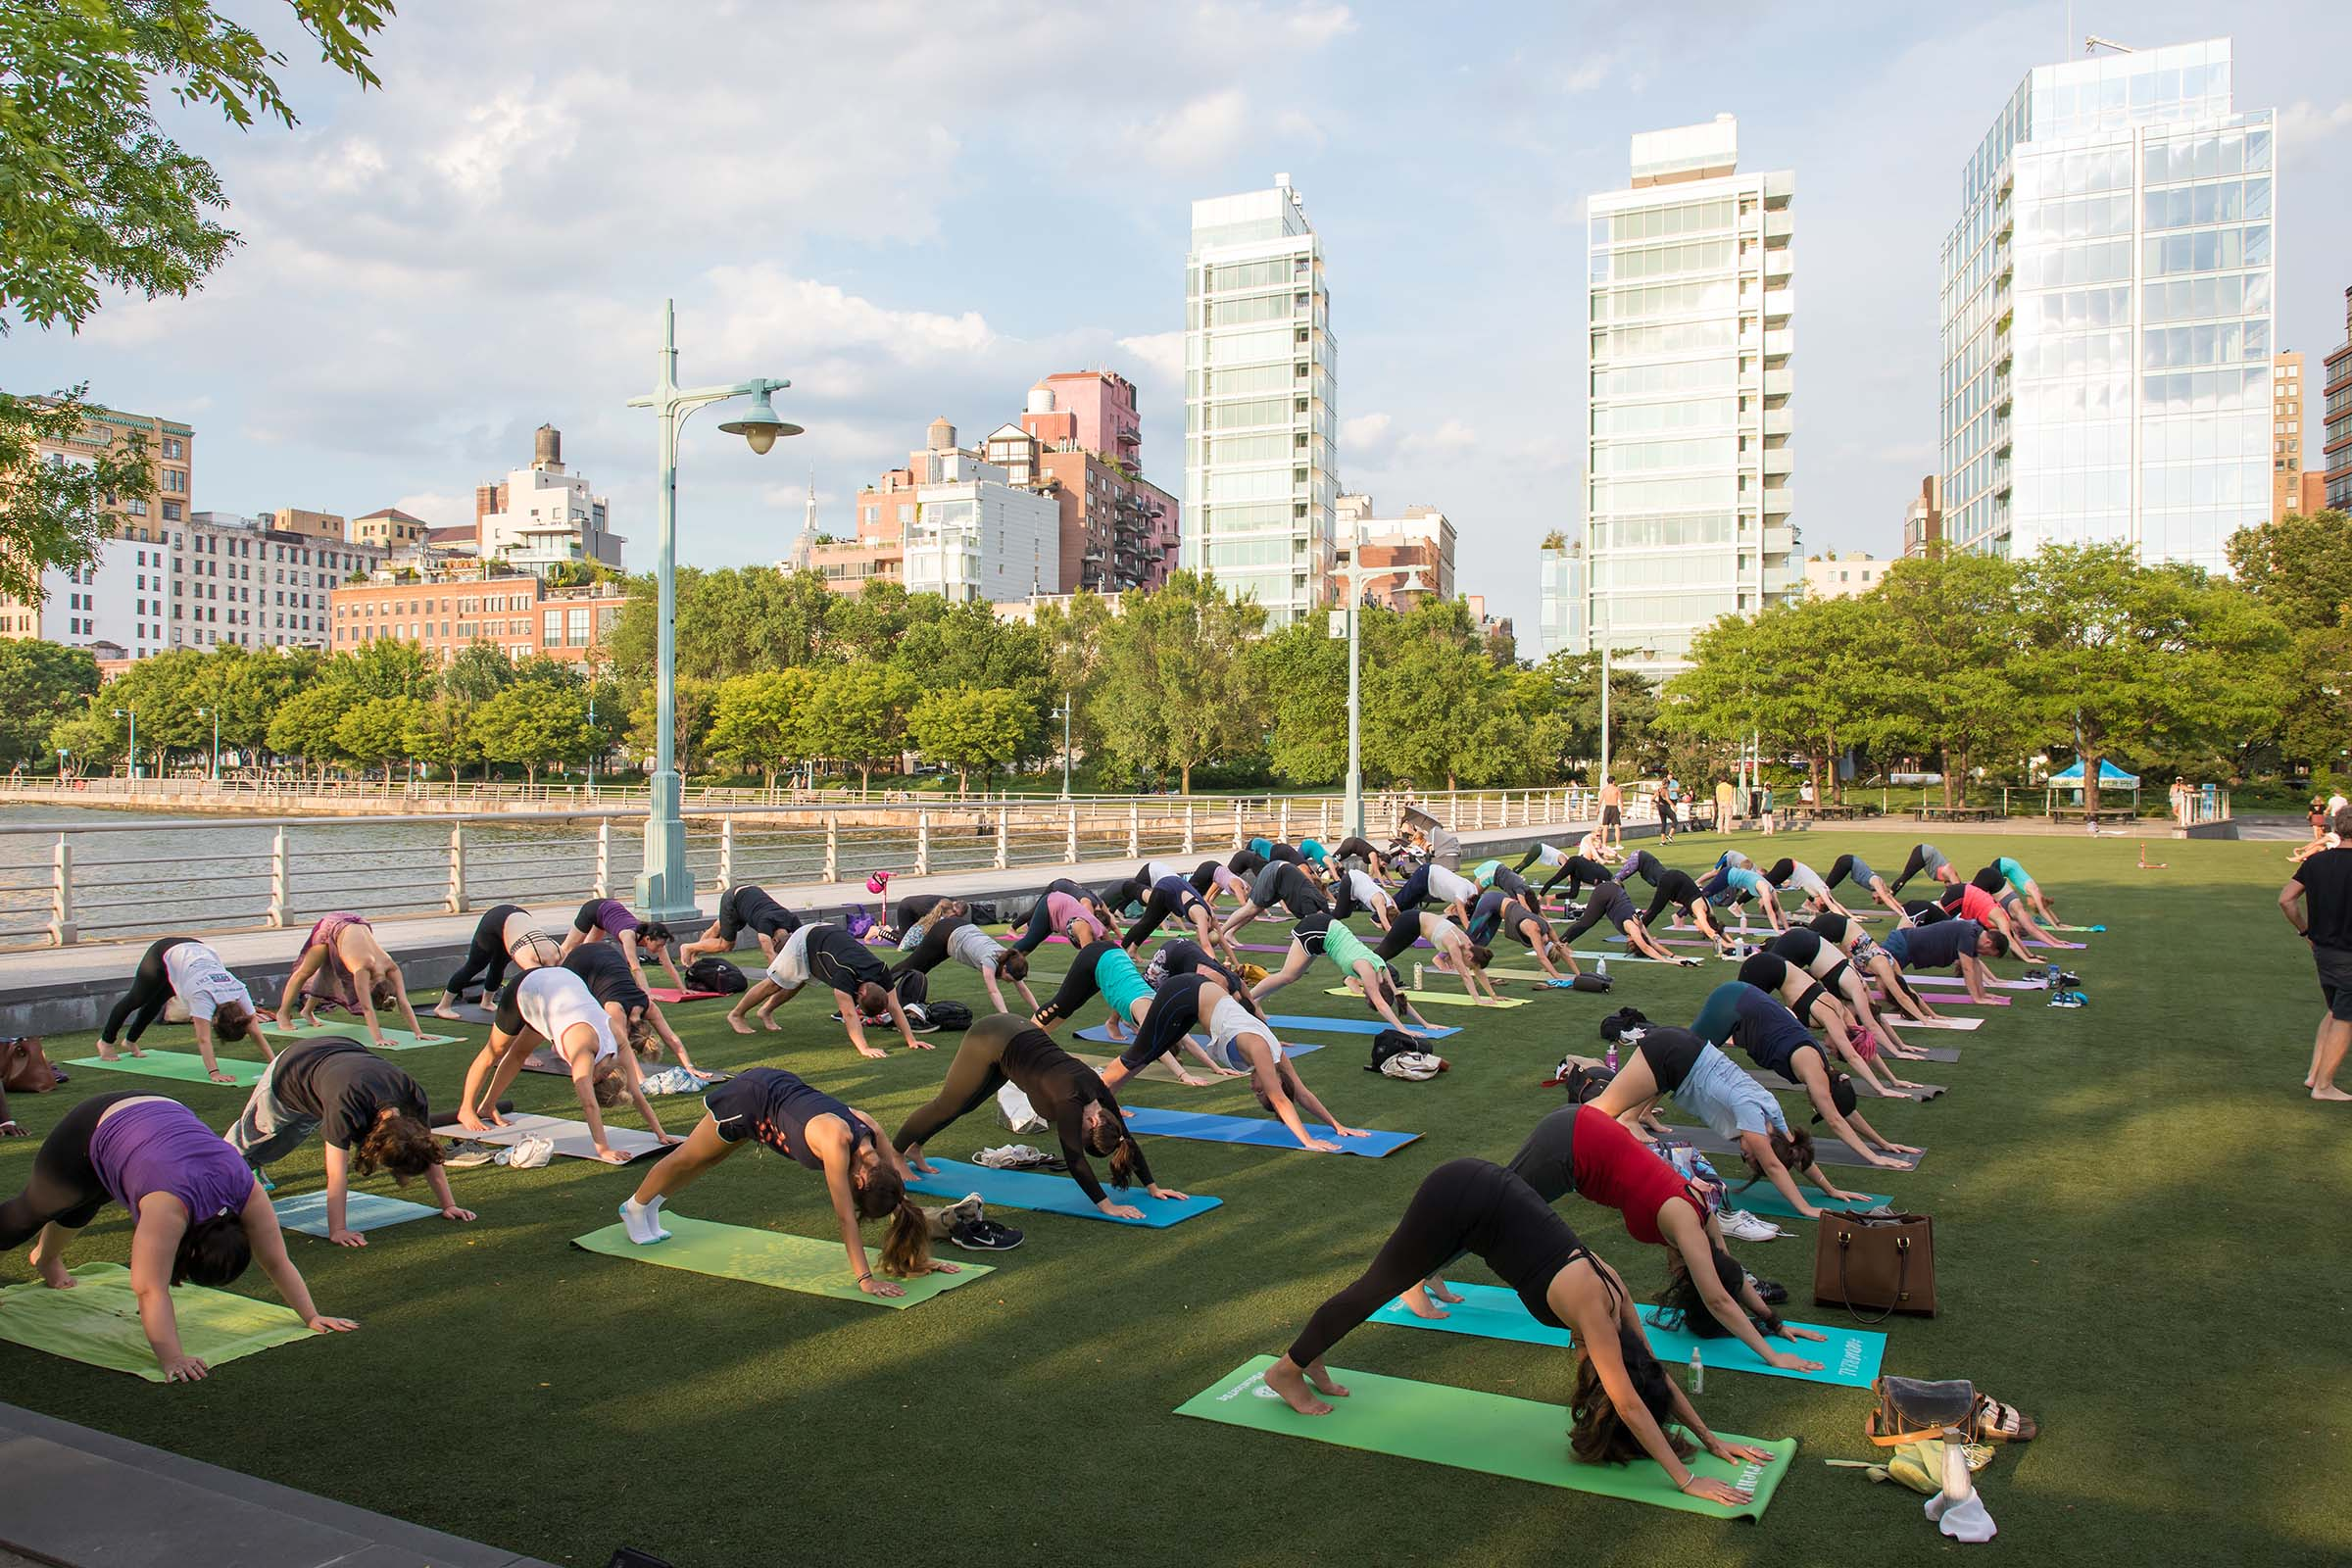 Yoga enthusiasts practice yoga with a downward dog move at Pier 46